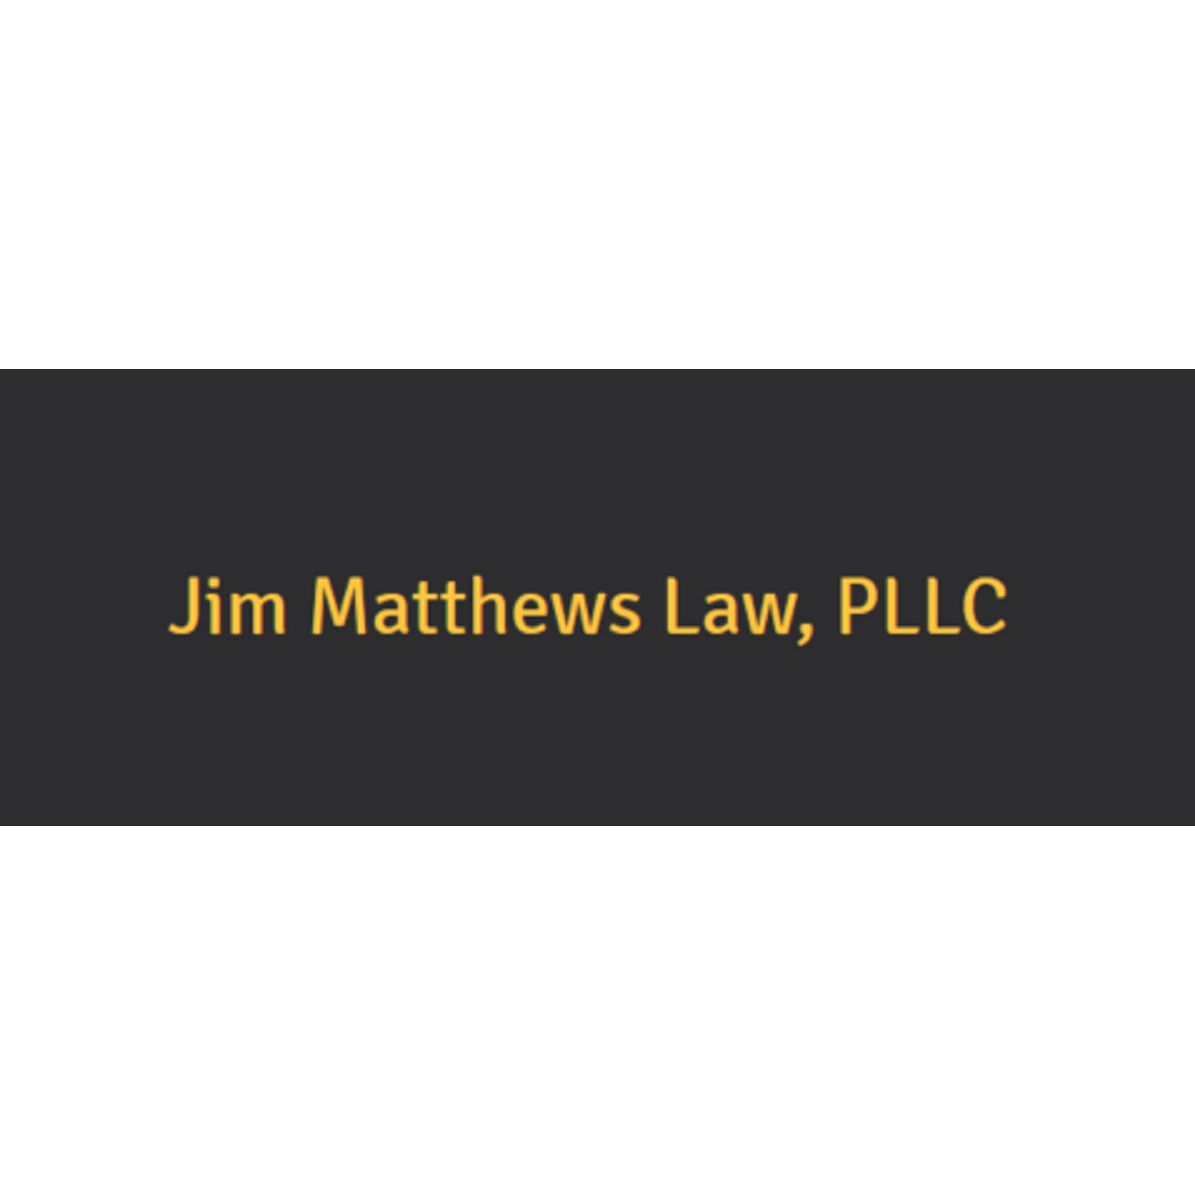 Jim Matthews Law, PLLC